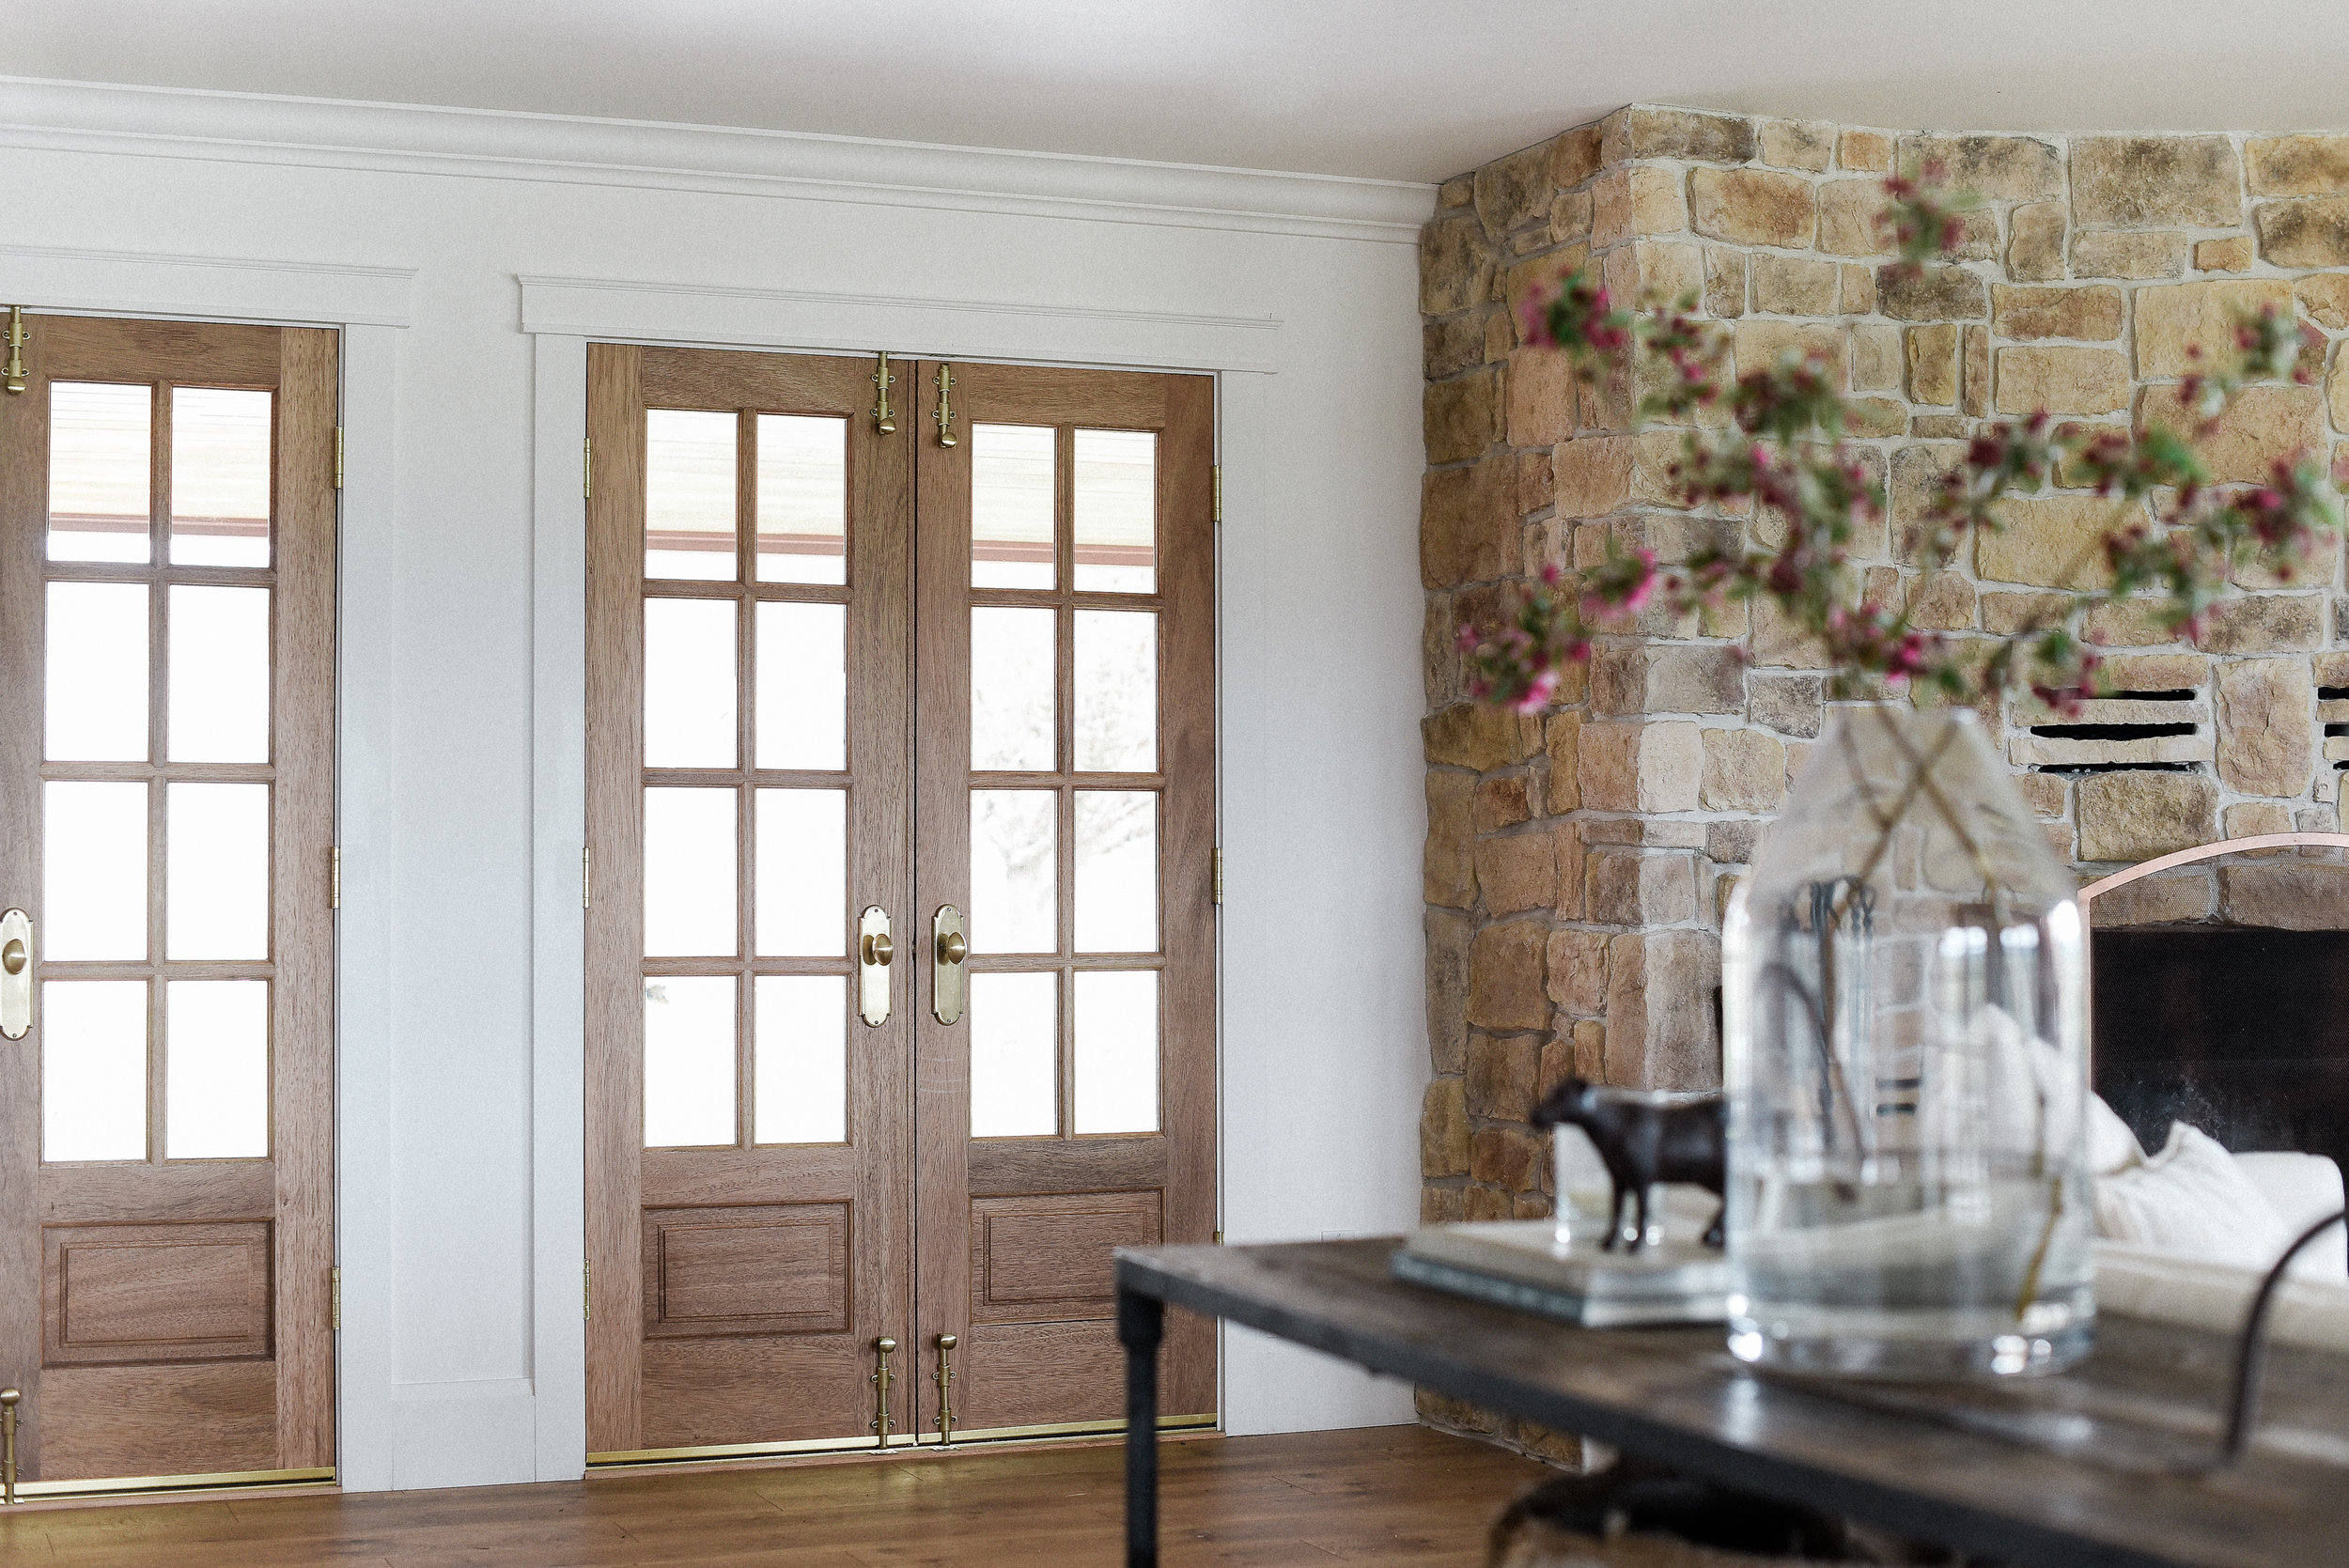 Wooden French doors - a set of narrow wooden french doors | modern farmhouse design inspiration from boxwood avenue